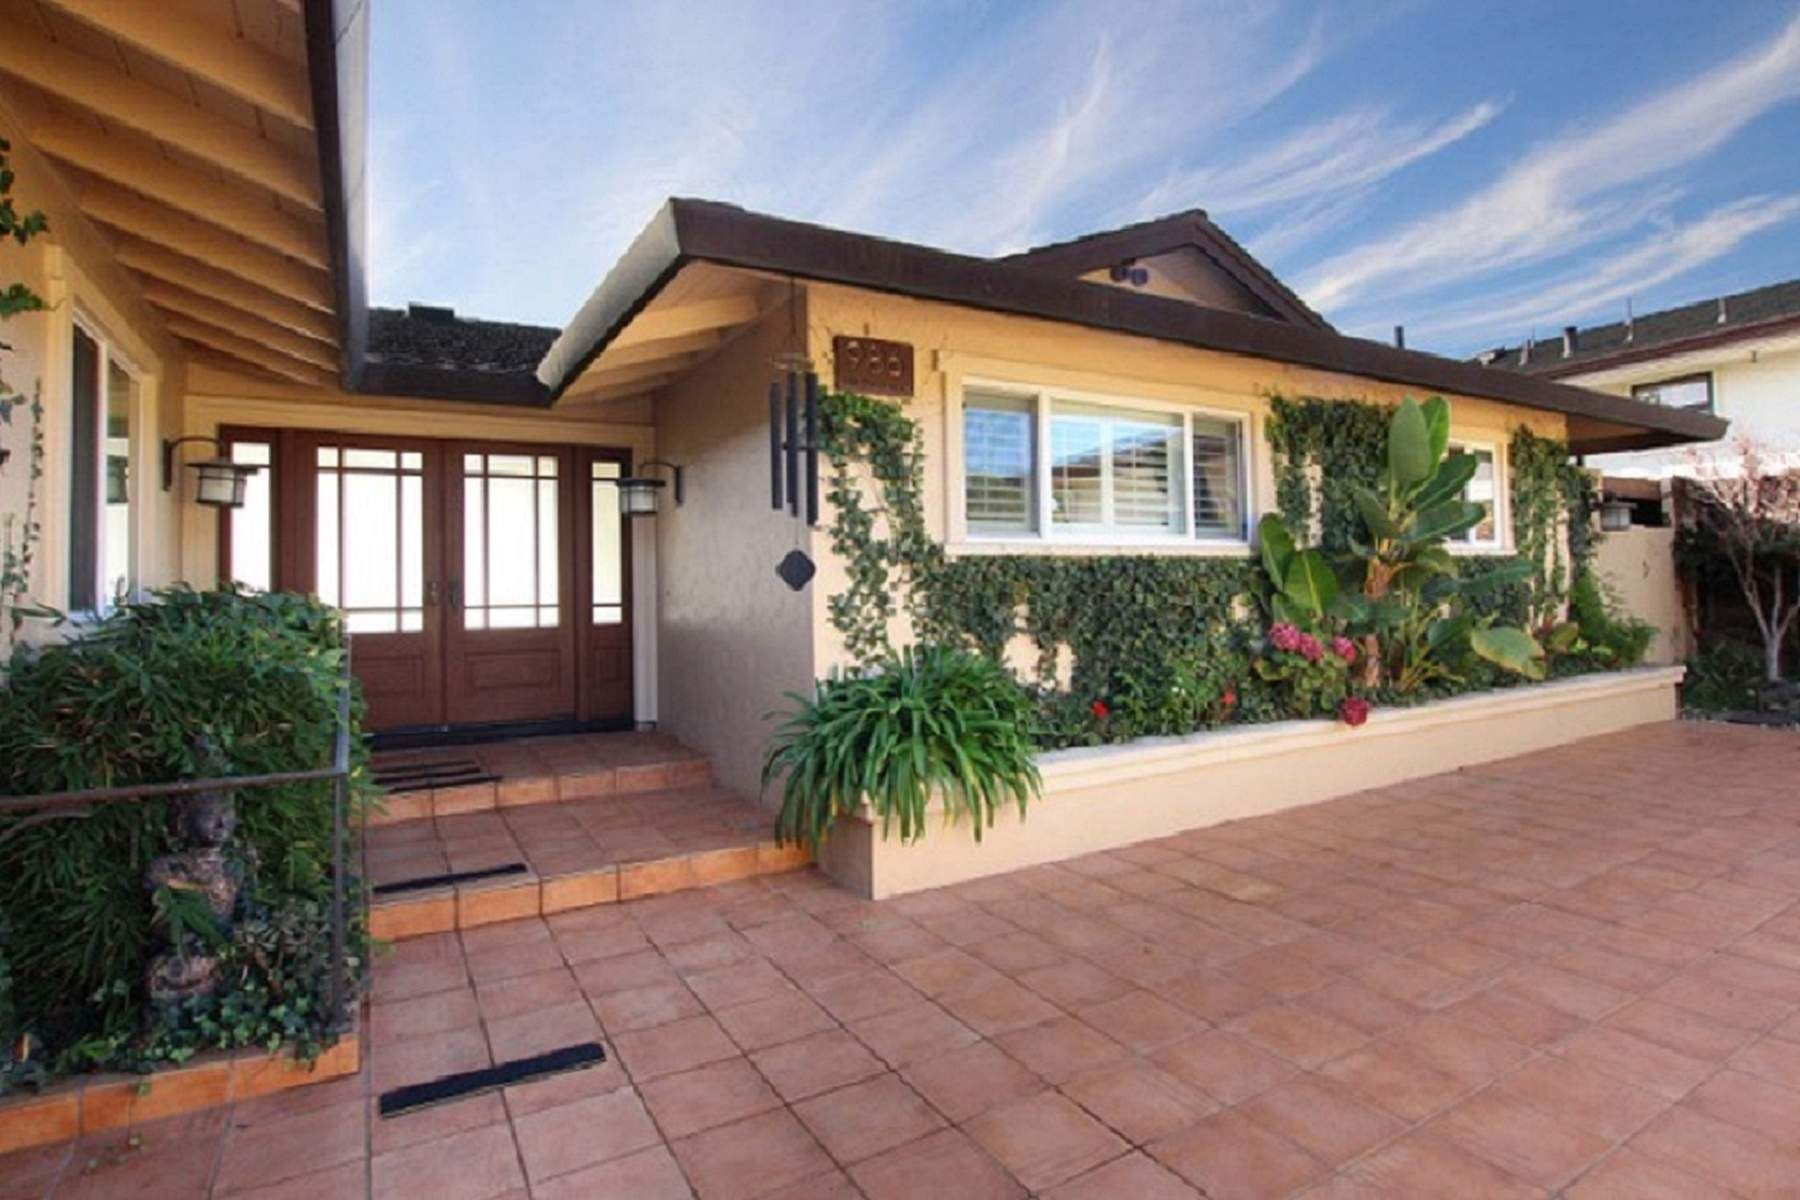 Single Family Home for Active at Oceanfront, White Water & Sand Views 986 Via Palo Alto Aptos, California 95003 United States